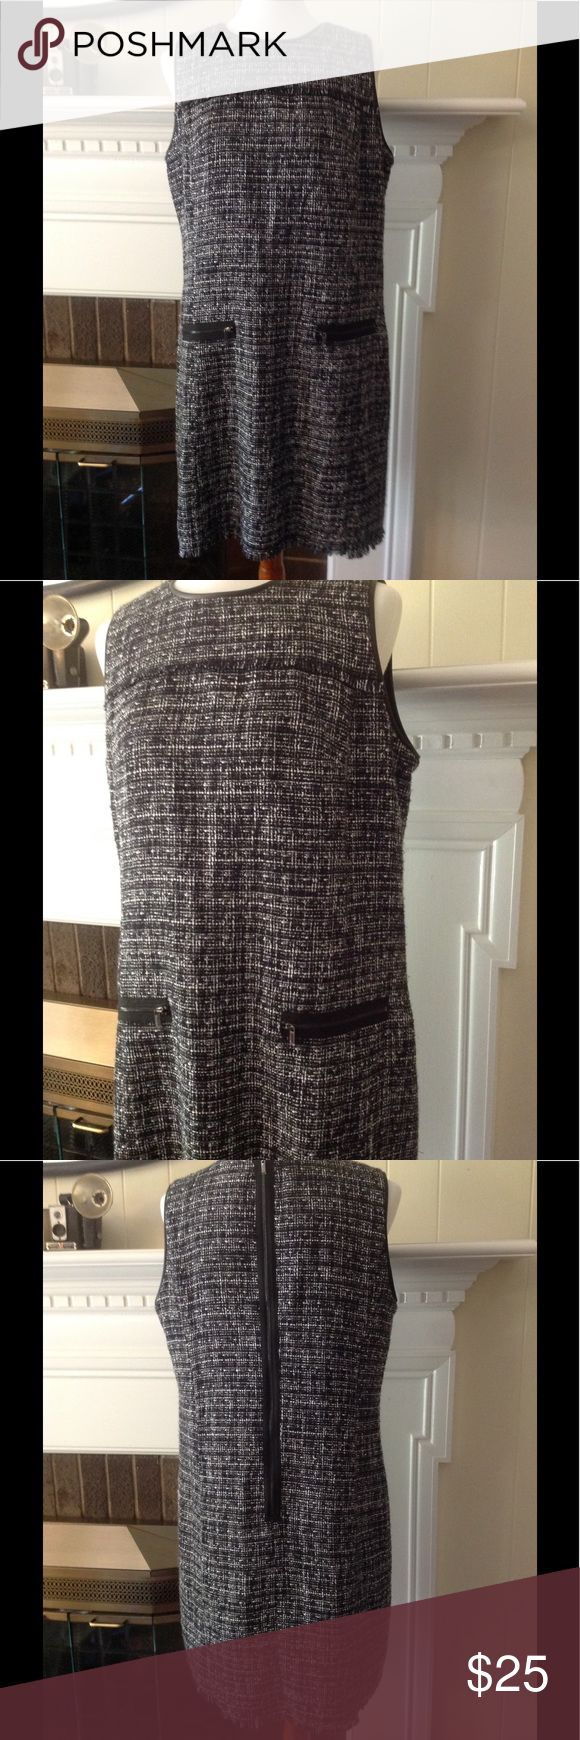 "Ann Taylor Tweed Dress Beautiful, black and white tweed, career, special occasion dress size 14. Great condition.  Flat measurements: armpit to armpit 19.5"", shoulder to bottom 36"". Please let me know if you have any questions. Ann Taylor Dresses"